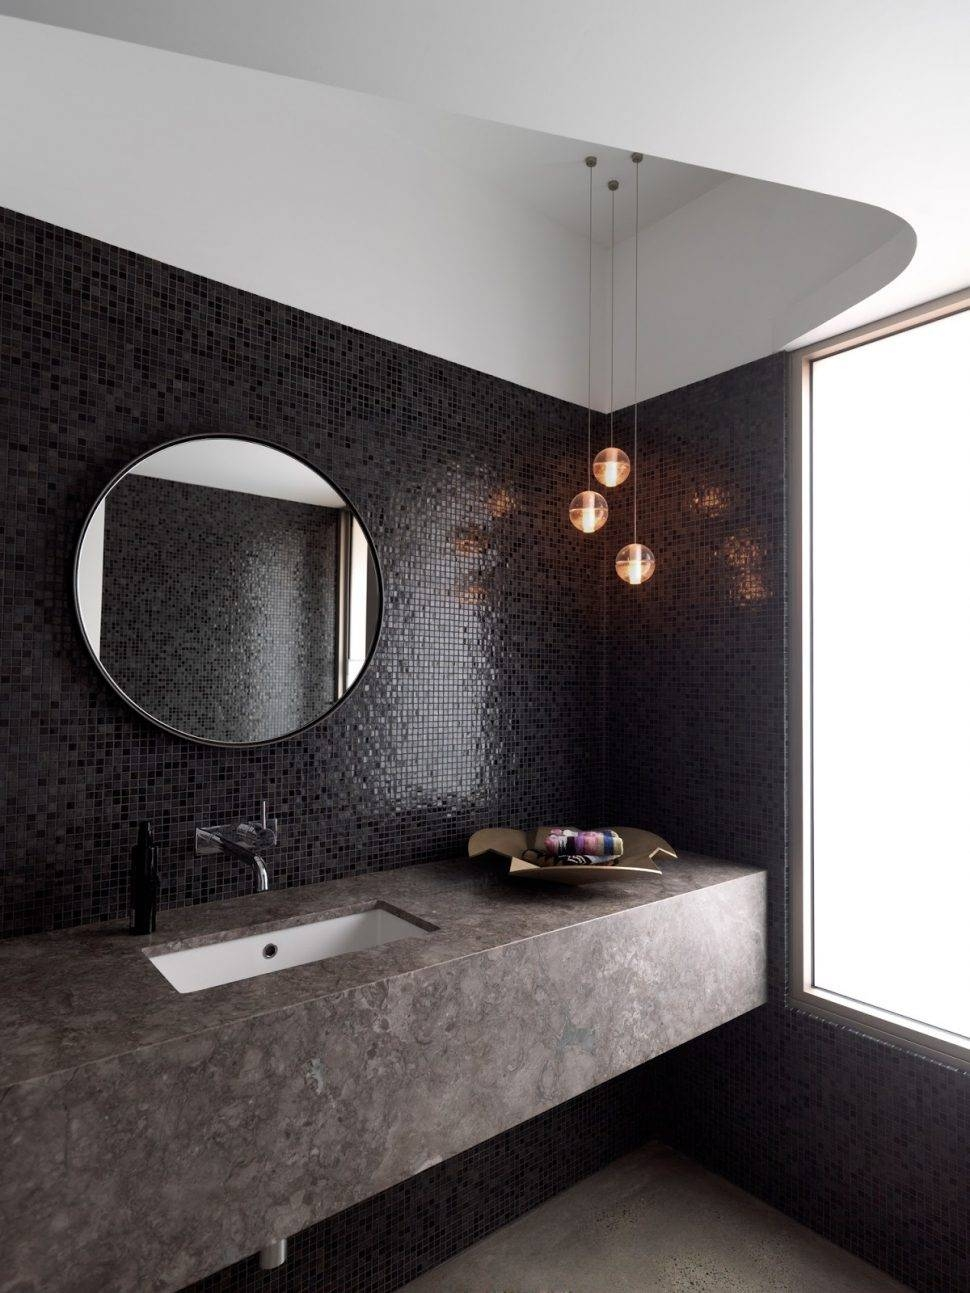 Bathroom Cabinets : Large Round Bathroom Mirrors Bathroom Marble Throughout Large Round Black Mirrors (View 15 of 15)